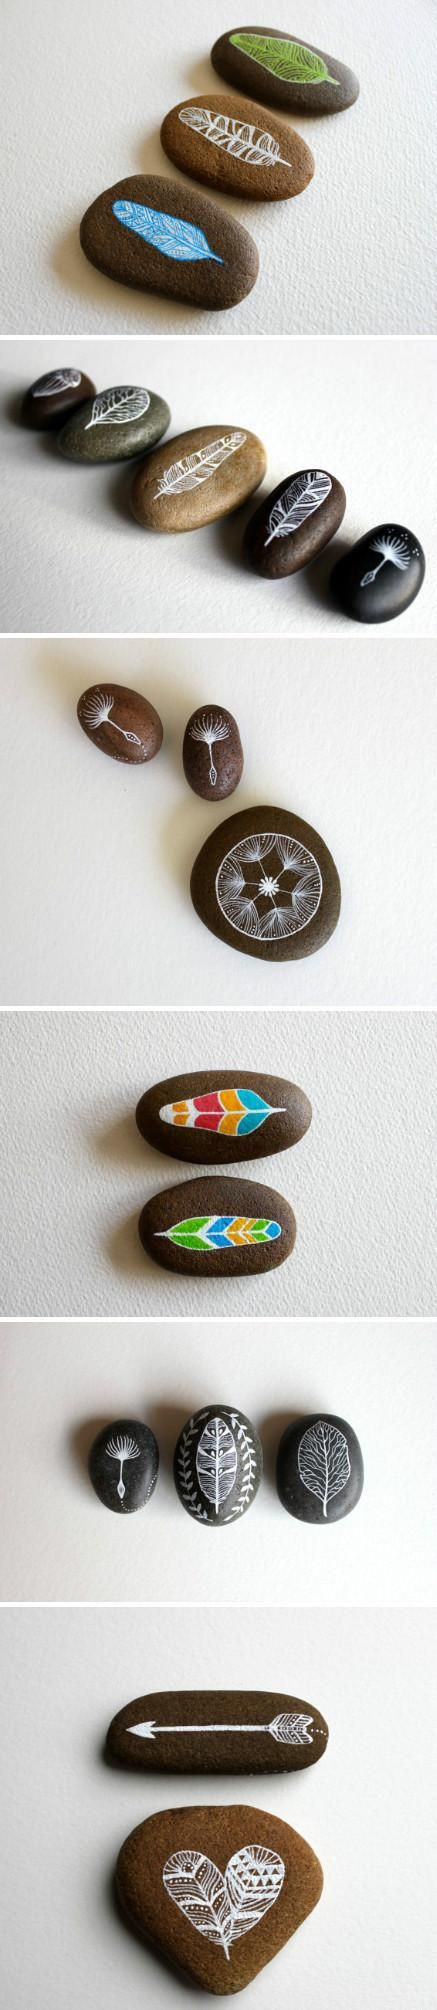 Paint them with different symbols of your love or paint mr. Place them around your reception for a little touch of love!